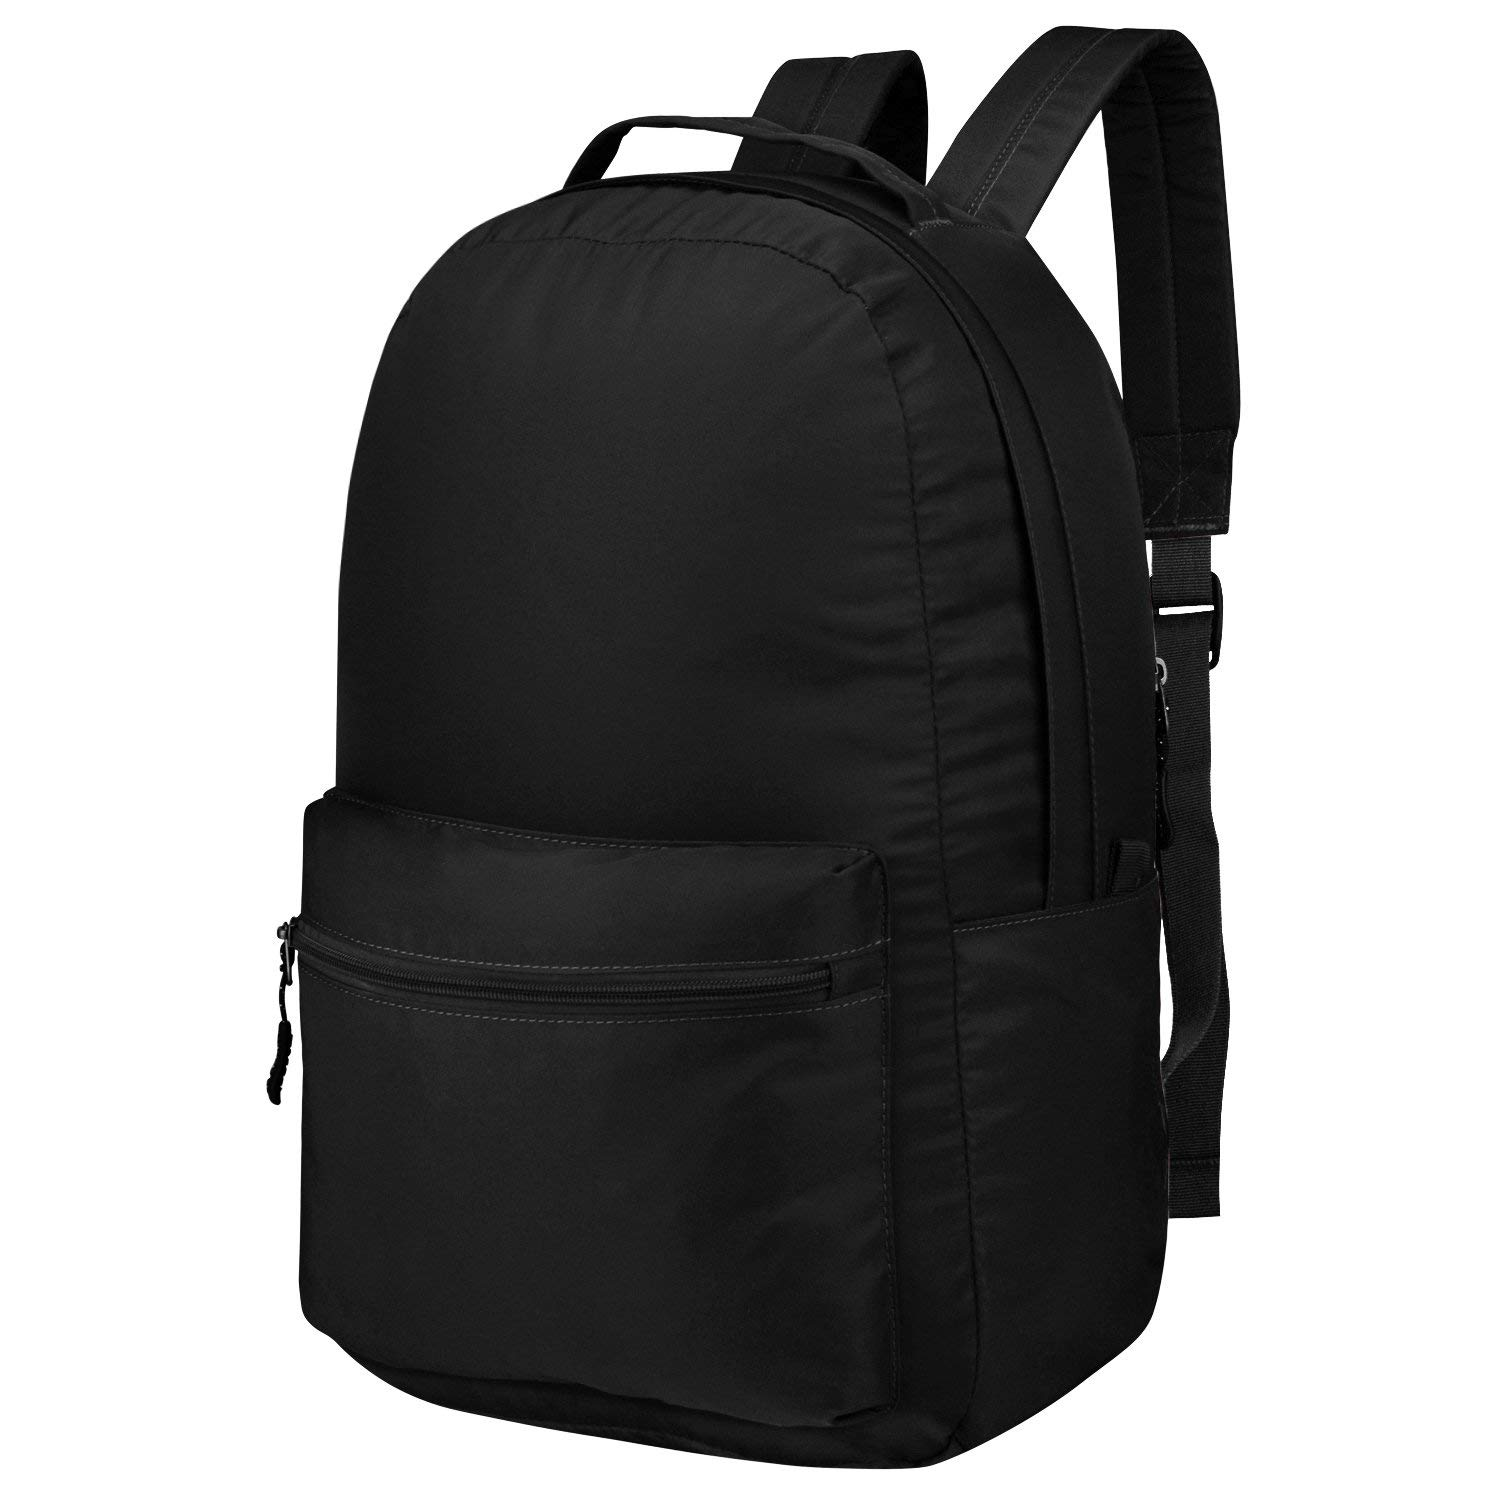 """Mengar Casual Backpack, Classic Travel Backpack Daypack for College Girls Womens - Water Resistant Student School Bag Fits 15.6"""" Laptop and Notebook"""